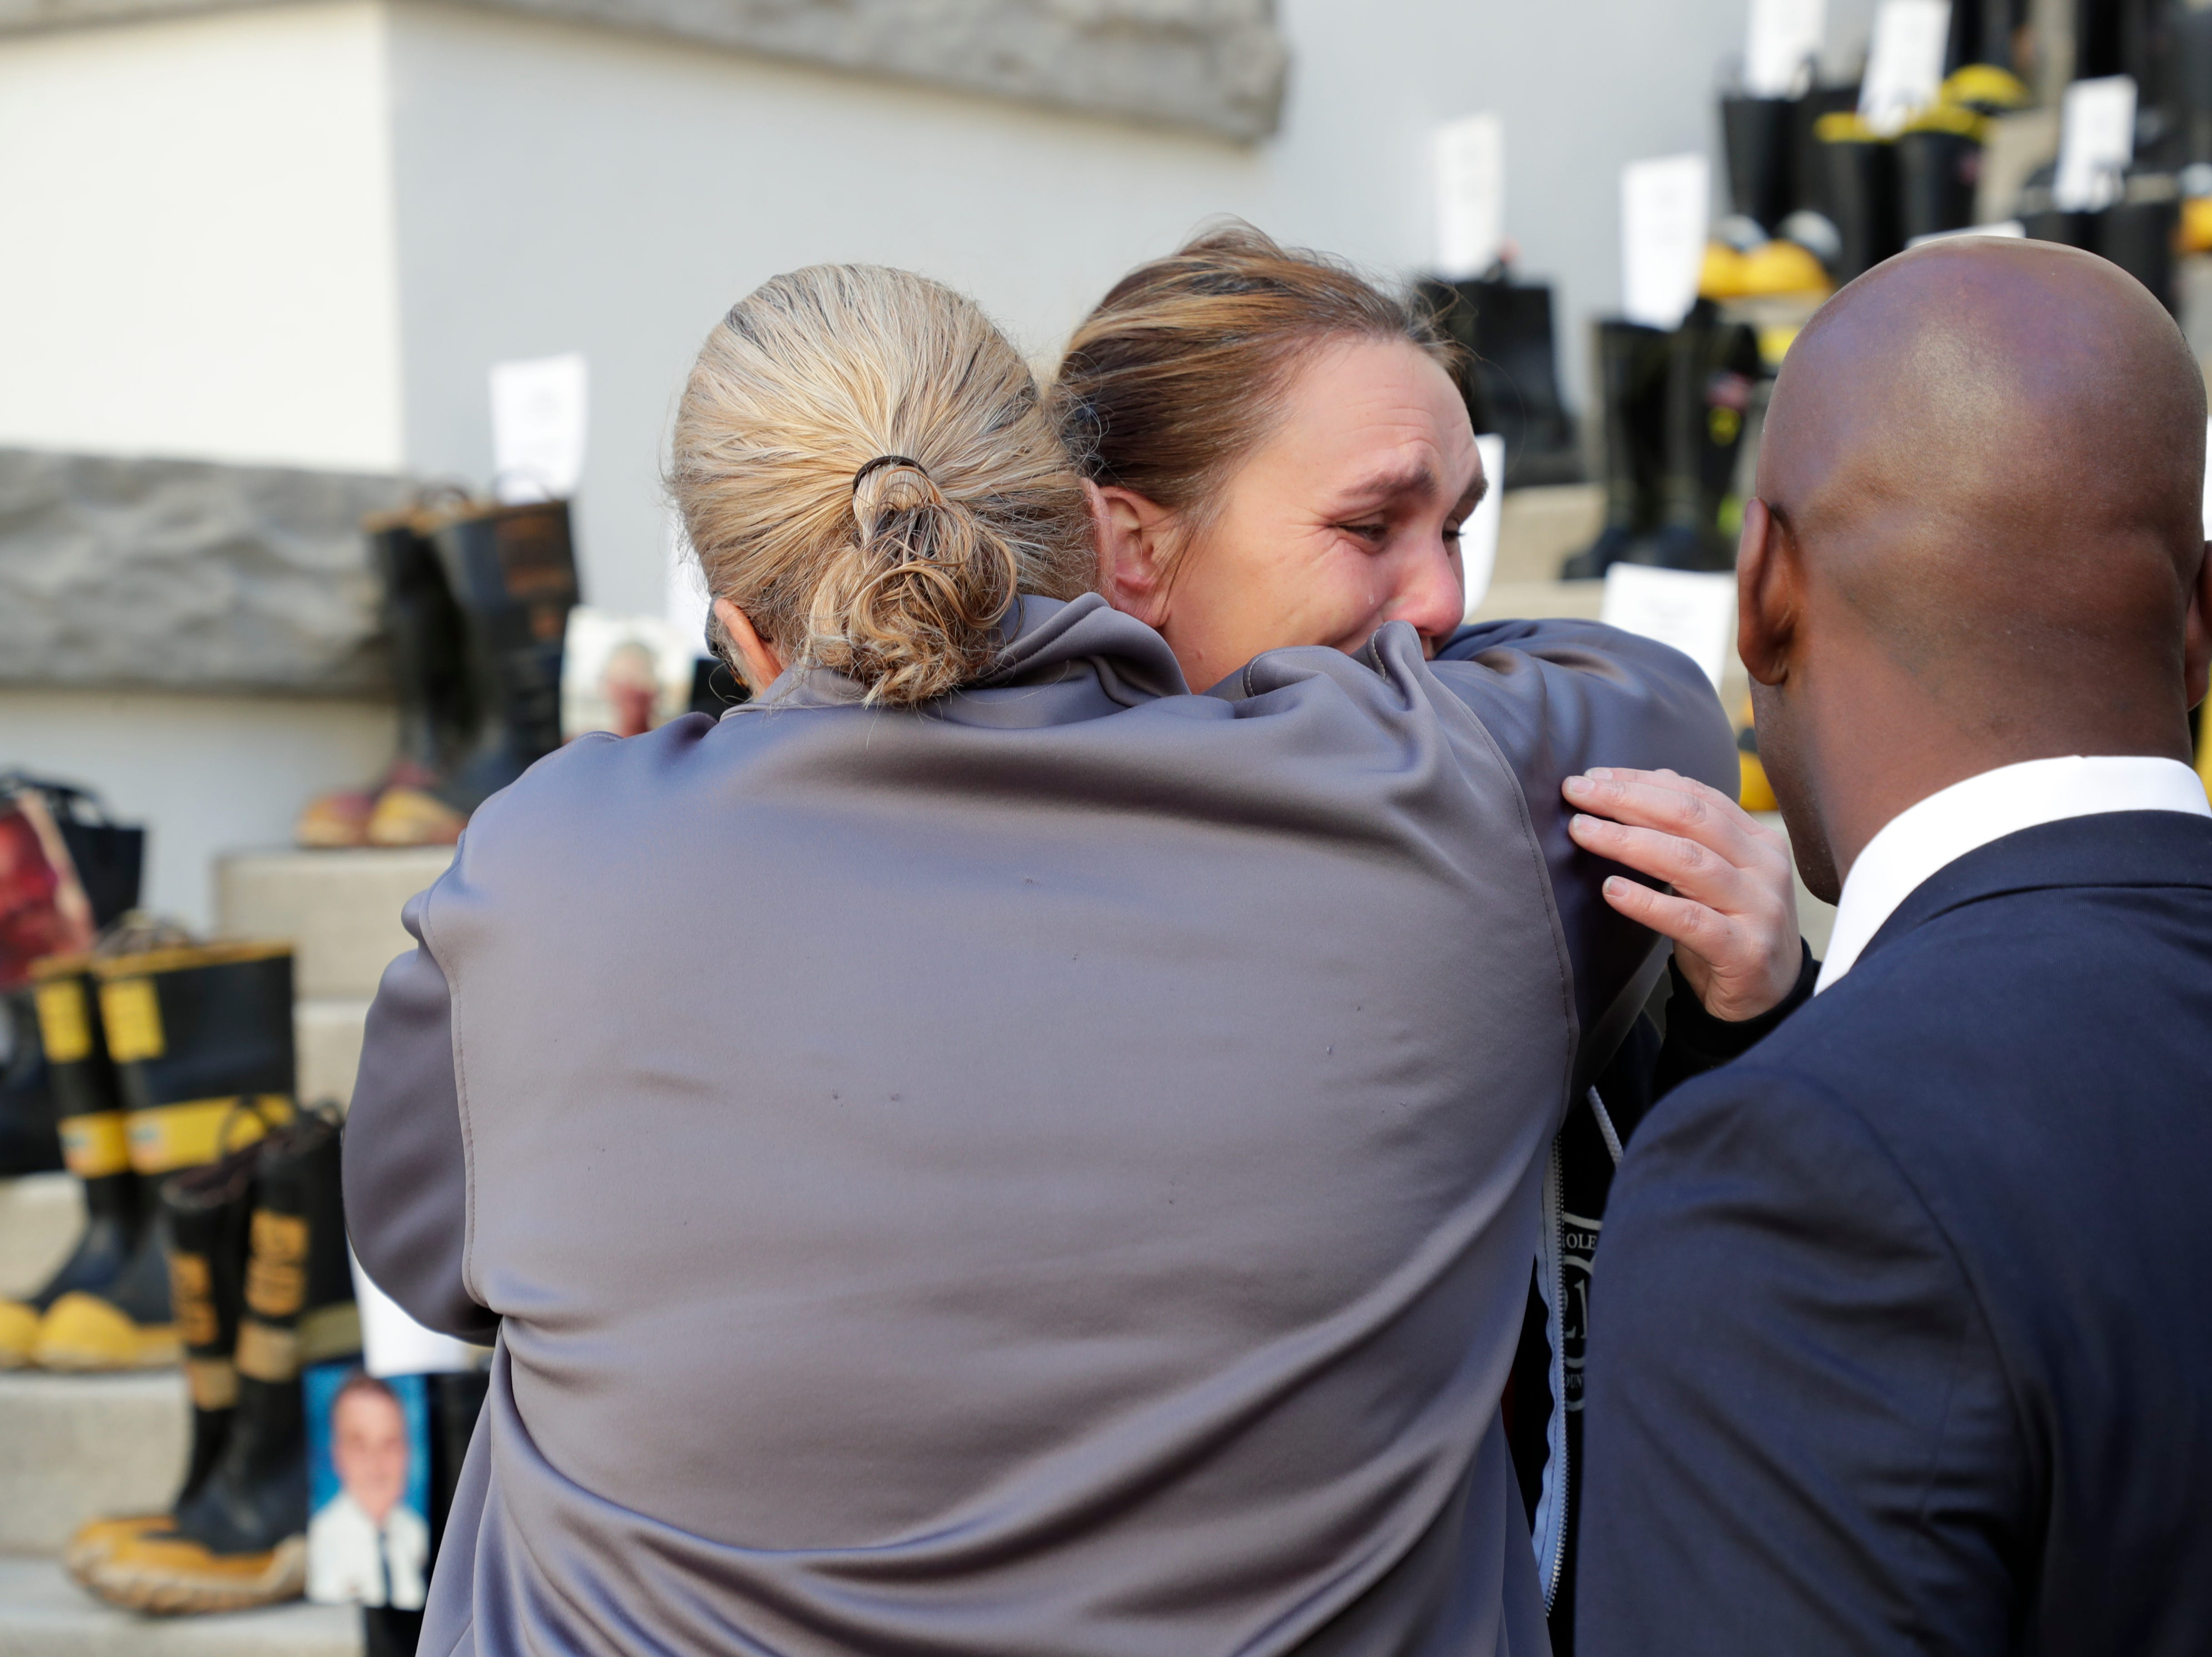 Claudine Buzzo, a firefighter with Miami-Dade Local 1403, left, hugs Jazz Zombo, a firefighter with Seminole County Professional Firefighters Local 3254, as she cries after placing a photo of a firefighter who lost their battle with cancer. Firefighters and their families from around the state create a display at the Capitol of 500 pairs of boots in honor of firefighters who lost their battle or are battling with cancer caused from smoke inhalation and carcinogens Thursday, March 7, 2019. The state of Florida is one of five states in the country that does not have a bill acknowledging cancer is a job-related illness.